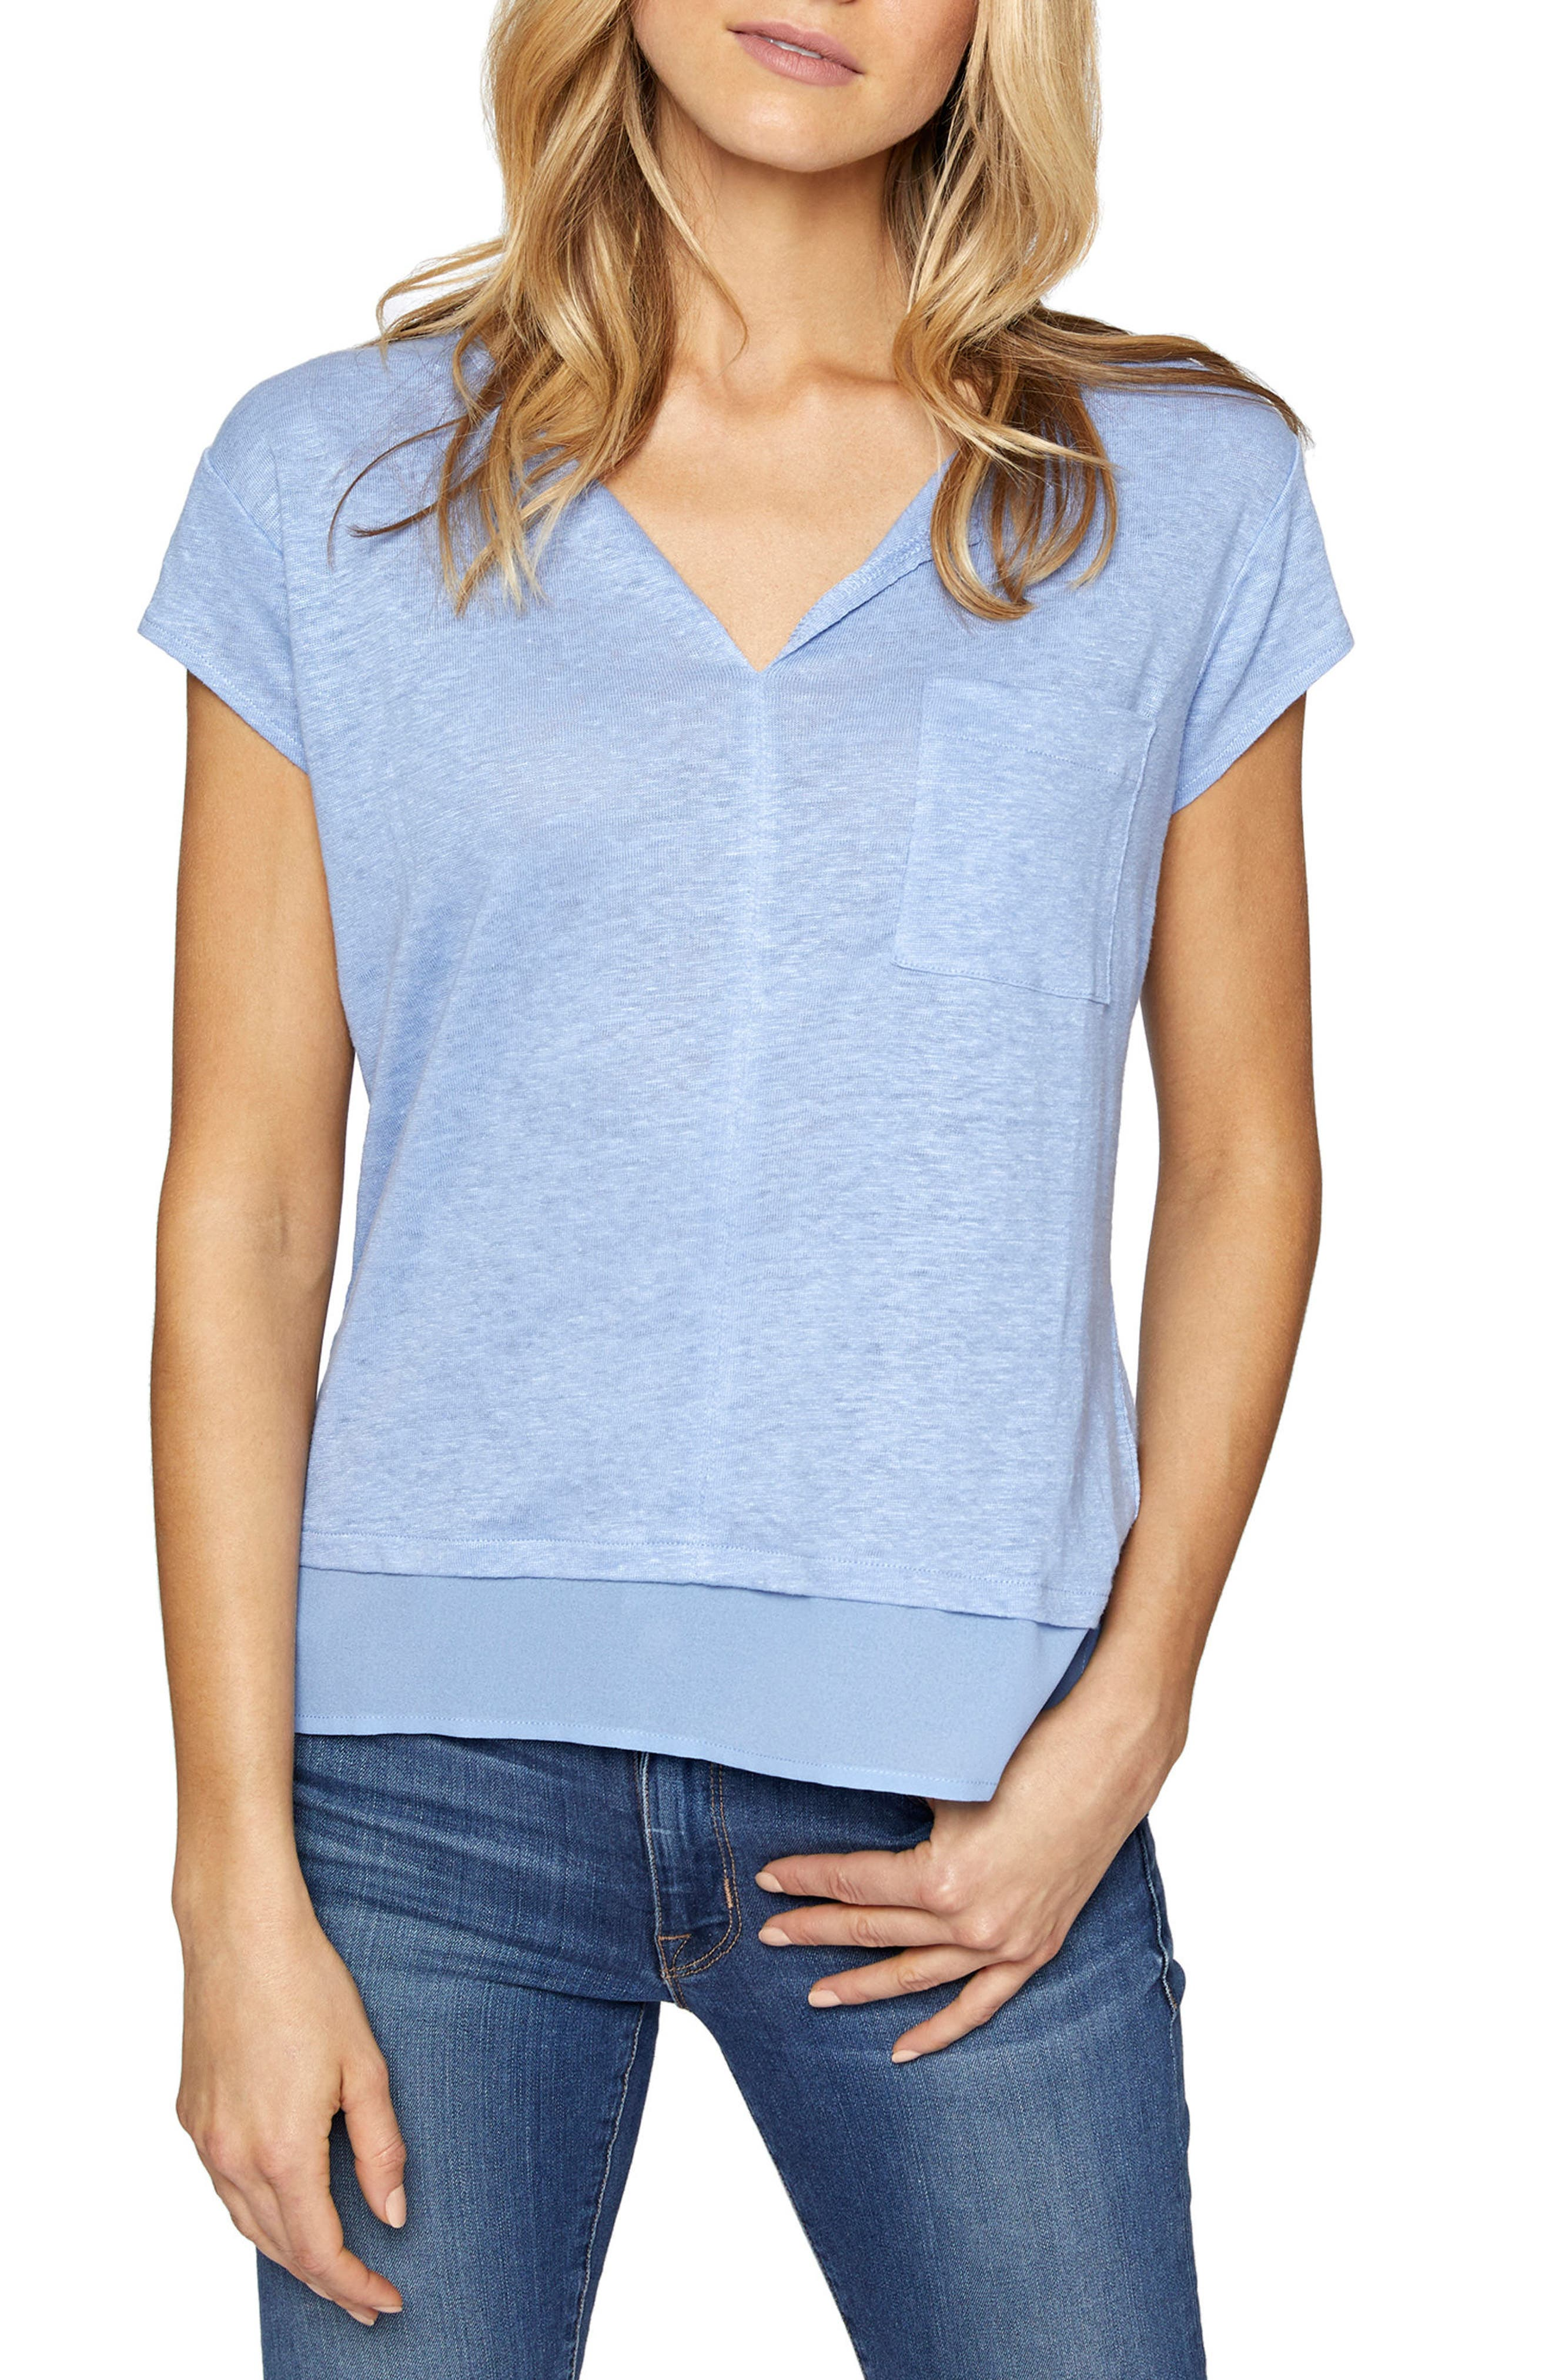 City Mix Layered Look Tee,                             Main thumbnail 1, color,                             Icy Blue